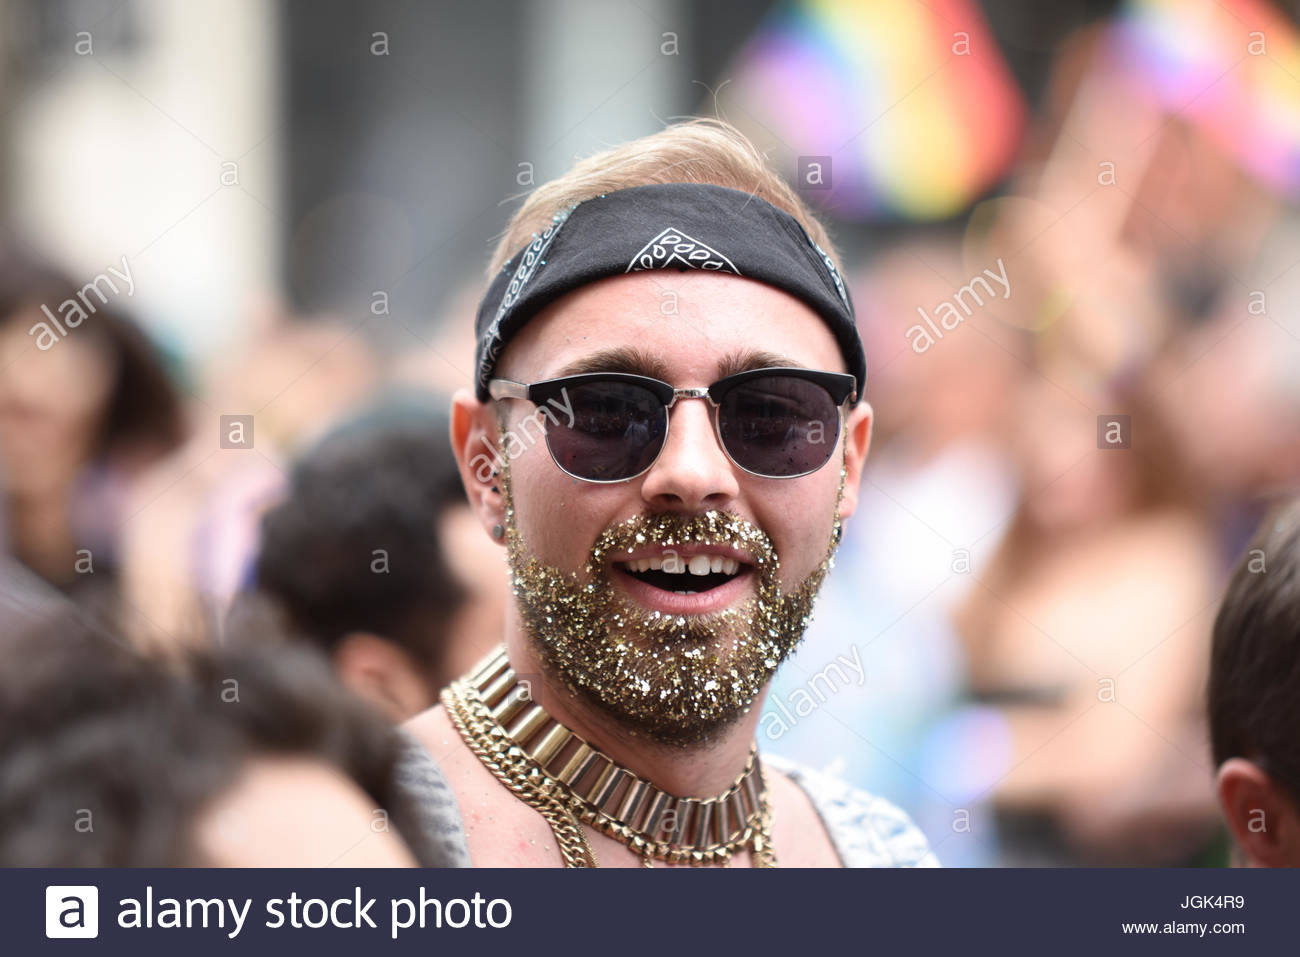 london-pride-parade-2017-lgbt-parading-through-regent-street-space-JGK4R9.jpg